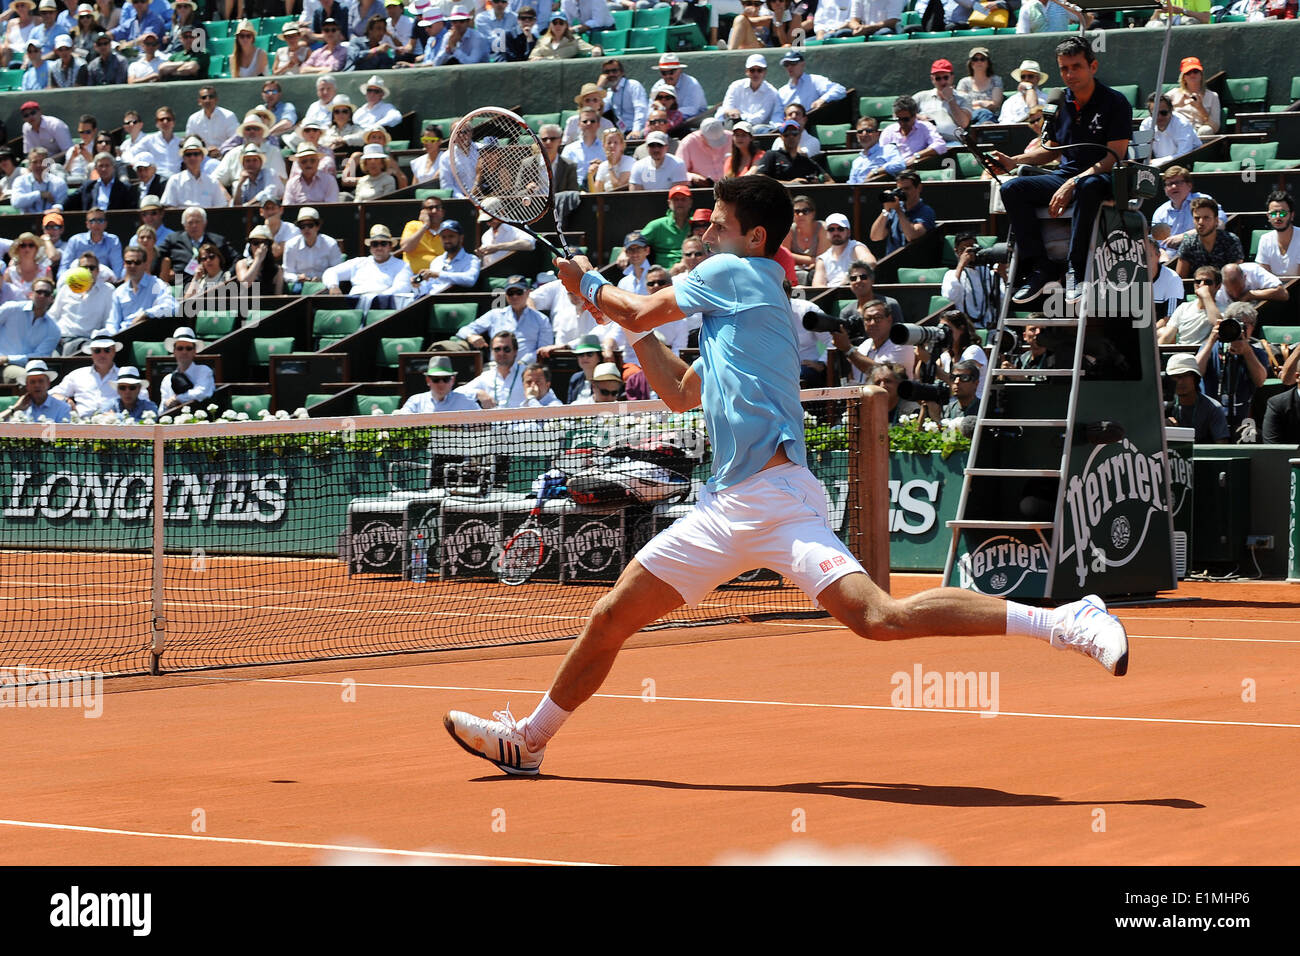 Roland Garros, Paris, France. 06th June, 2014. French Open Tennis Championships. Mens singles semi-final. Novak Djokovic versus Ernest Gulbis. Novak Djokovic with abackhand volley. Djokovic won by a score of 6-3 6-3 3-6 6-3 to reach the final against Nadal. Credit:  Action Plus Sports/Alamy Live News - Stock Image